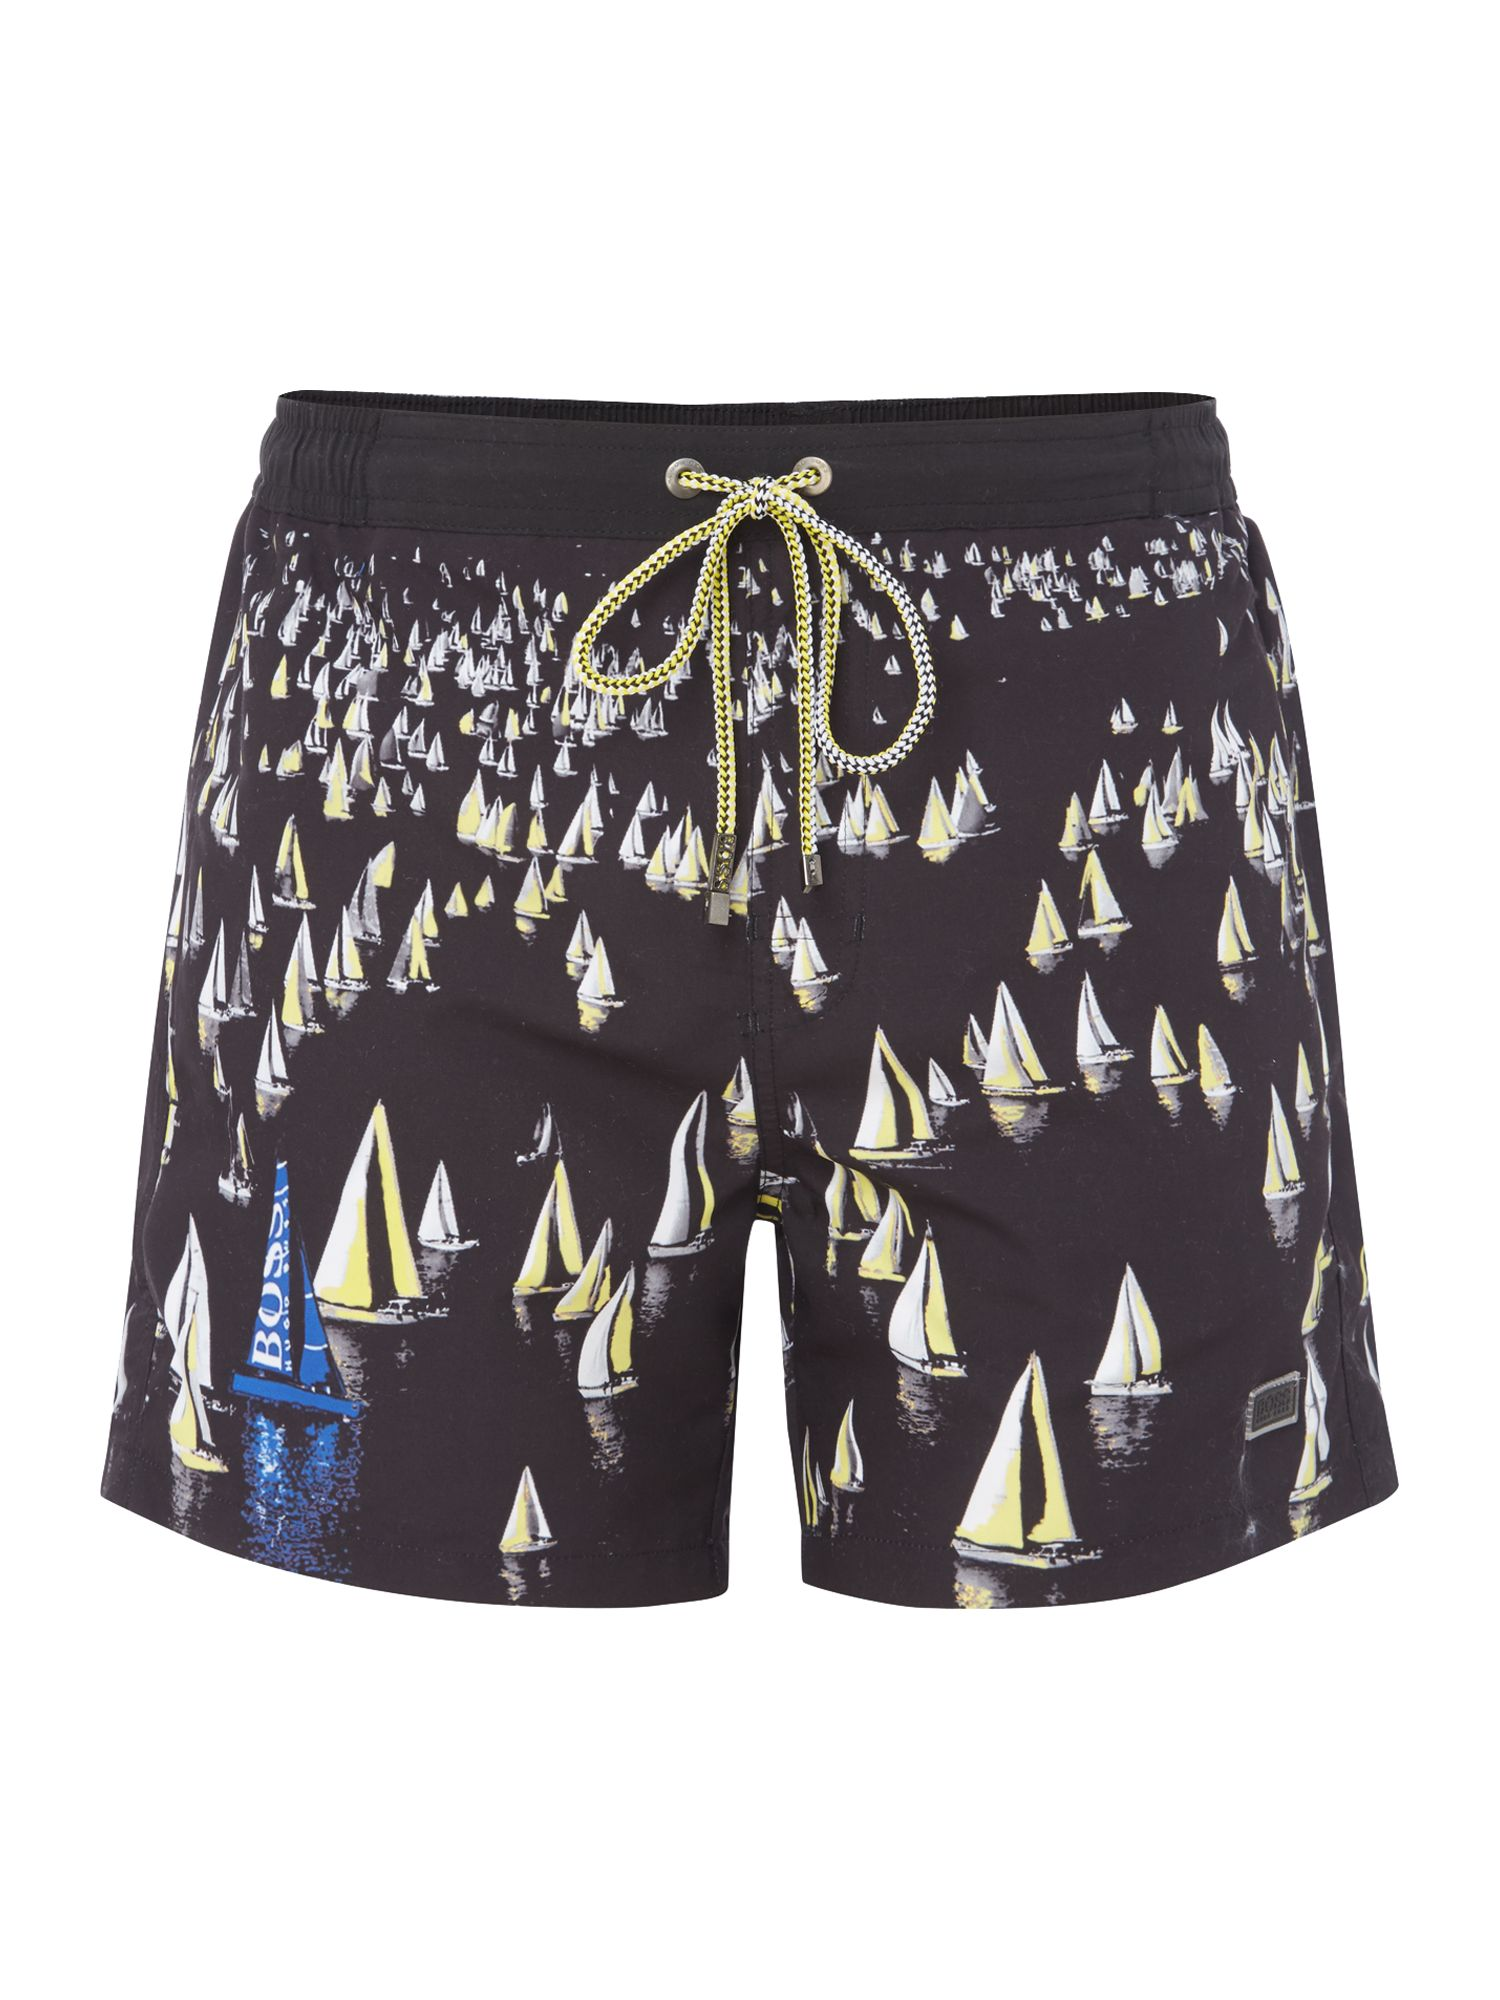 Men's Hugo Boss Mandarinfish Sail Boat Shorts, Black